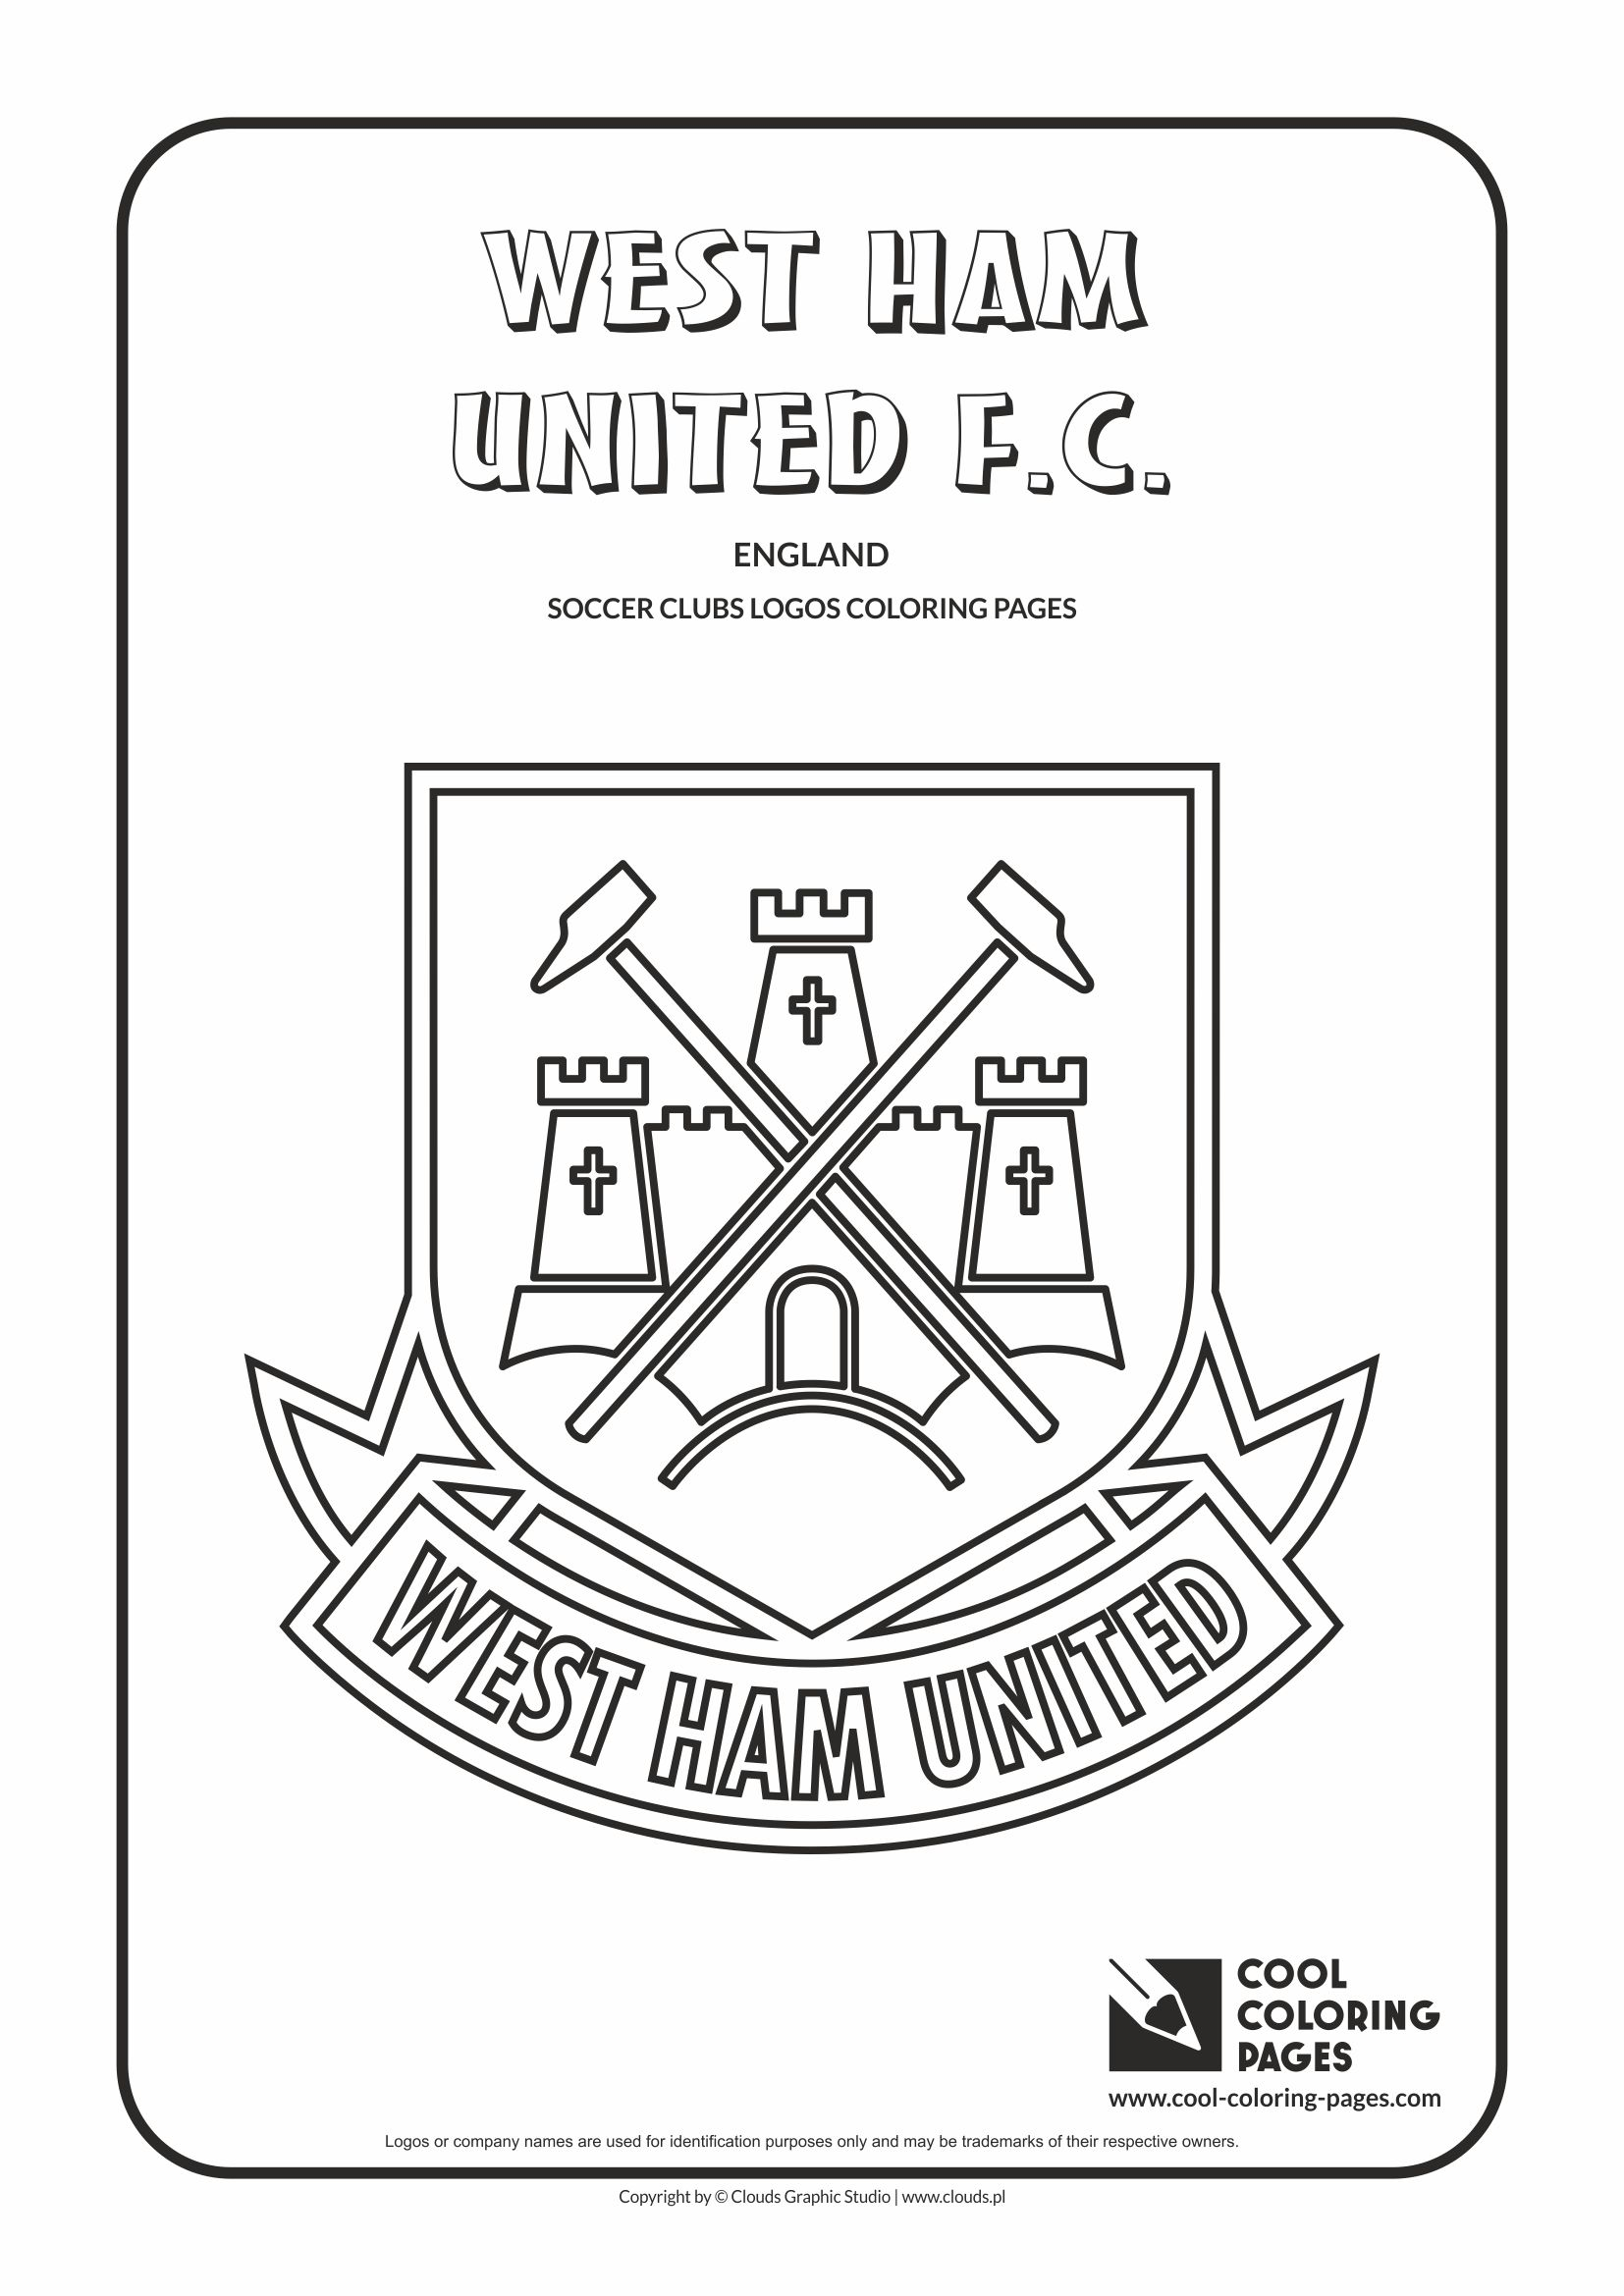 Cool Coloring Pages West Ham United F.C. logo coloring